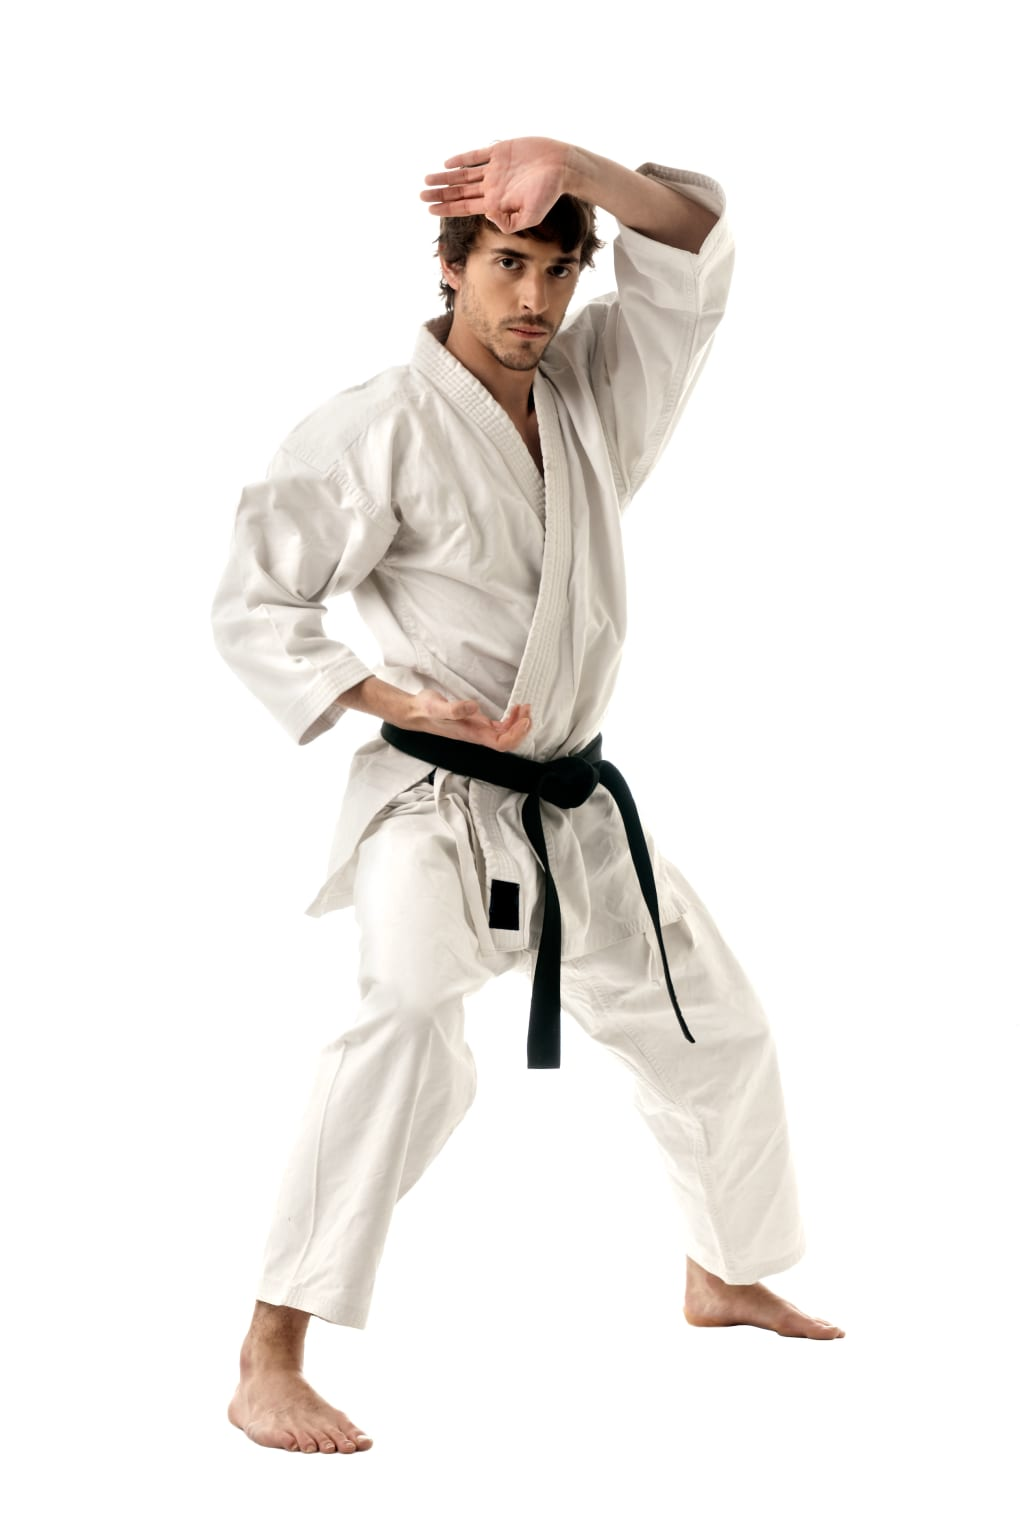 Kids Martial Arts in Oakleigh - Challenge Martial Arts & Fitness Centre  - Coping with anxiety through martial arts